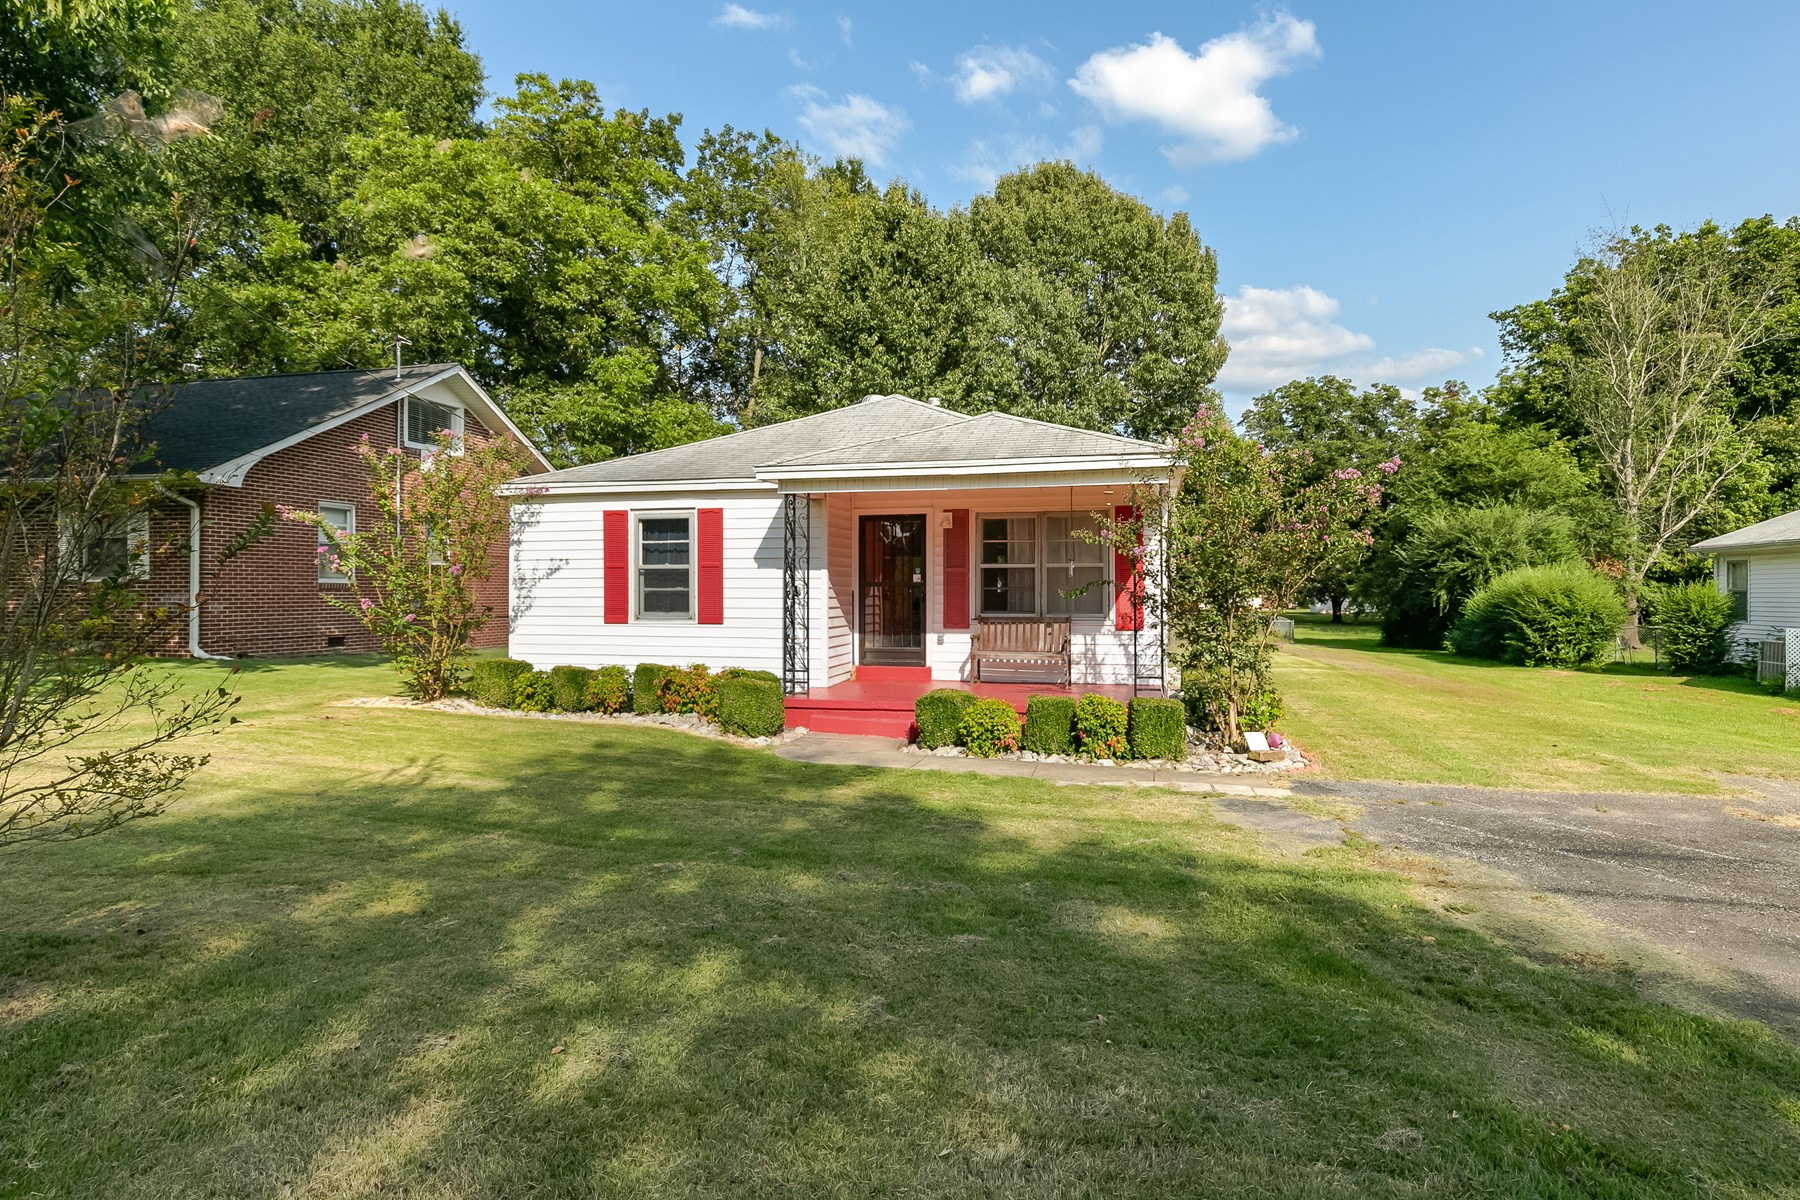 Small Home for Sale in Town - Remodeled - Move In Ready - TN